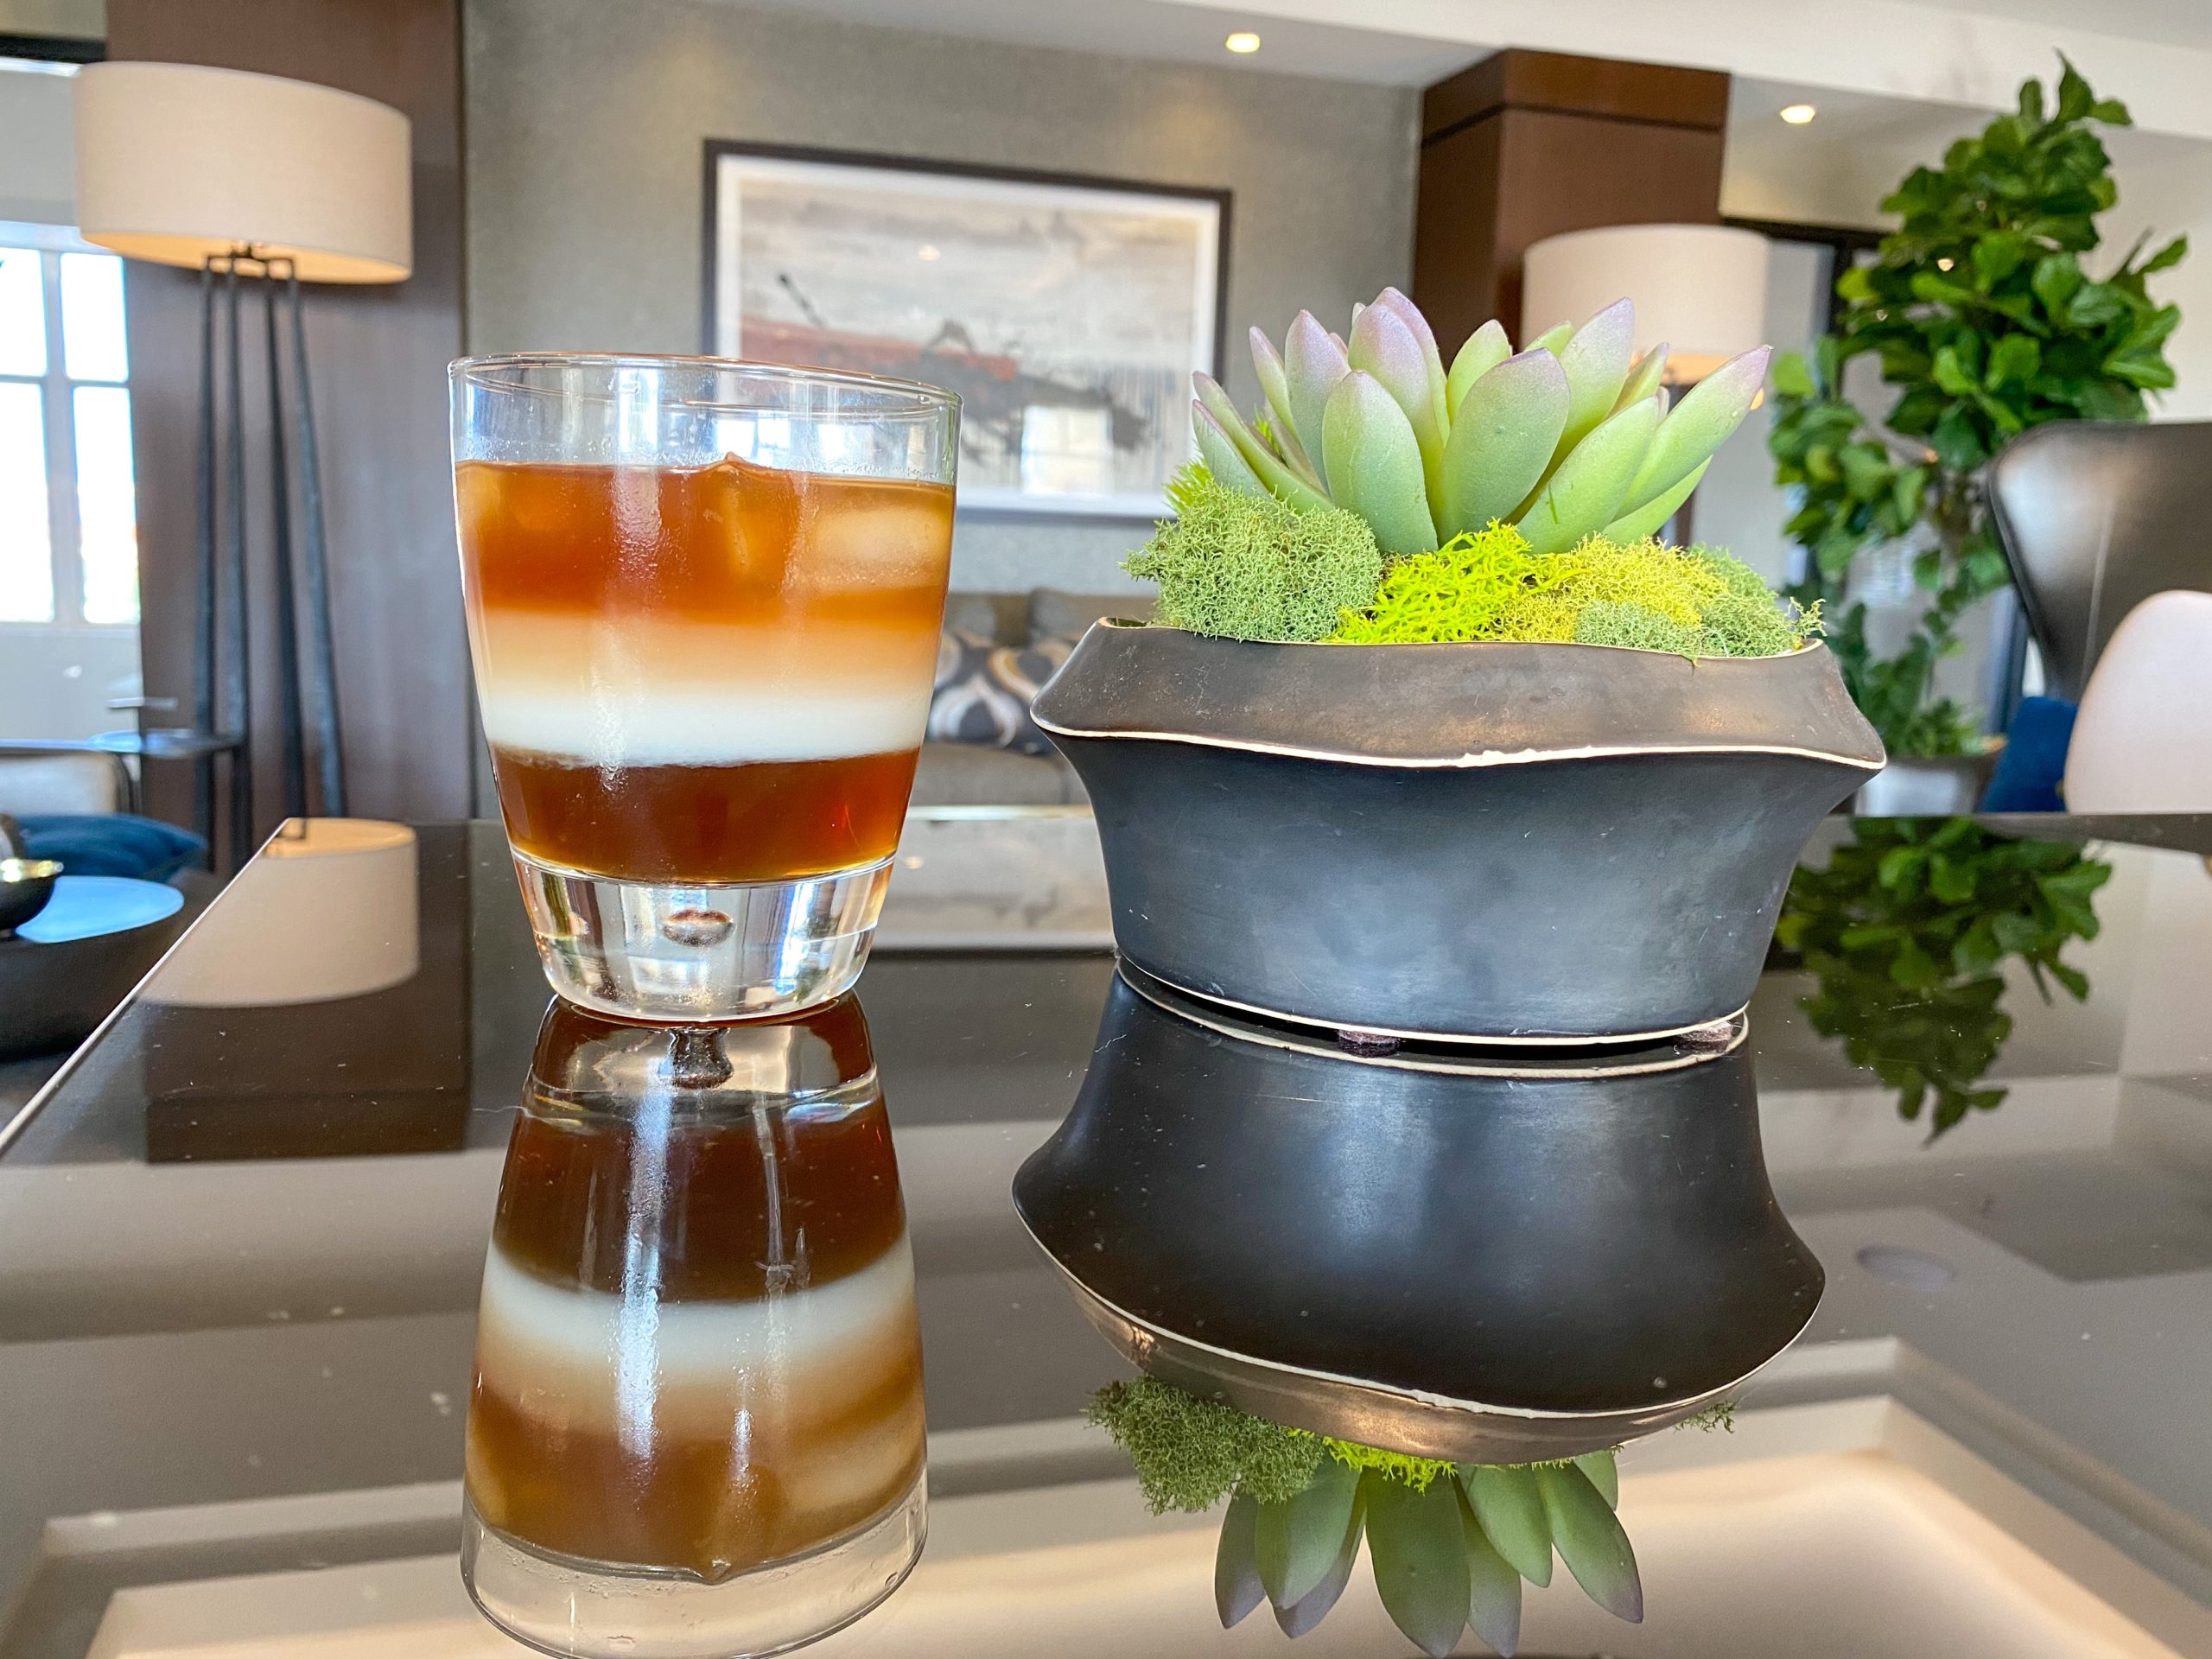 Ombre Vanilla Iced Coffee, gourmet coffee at home